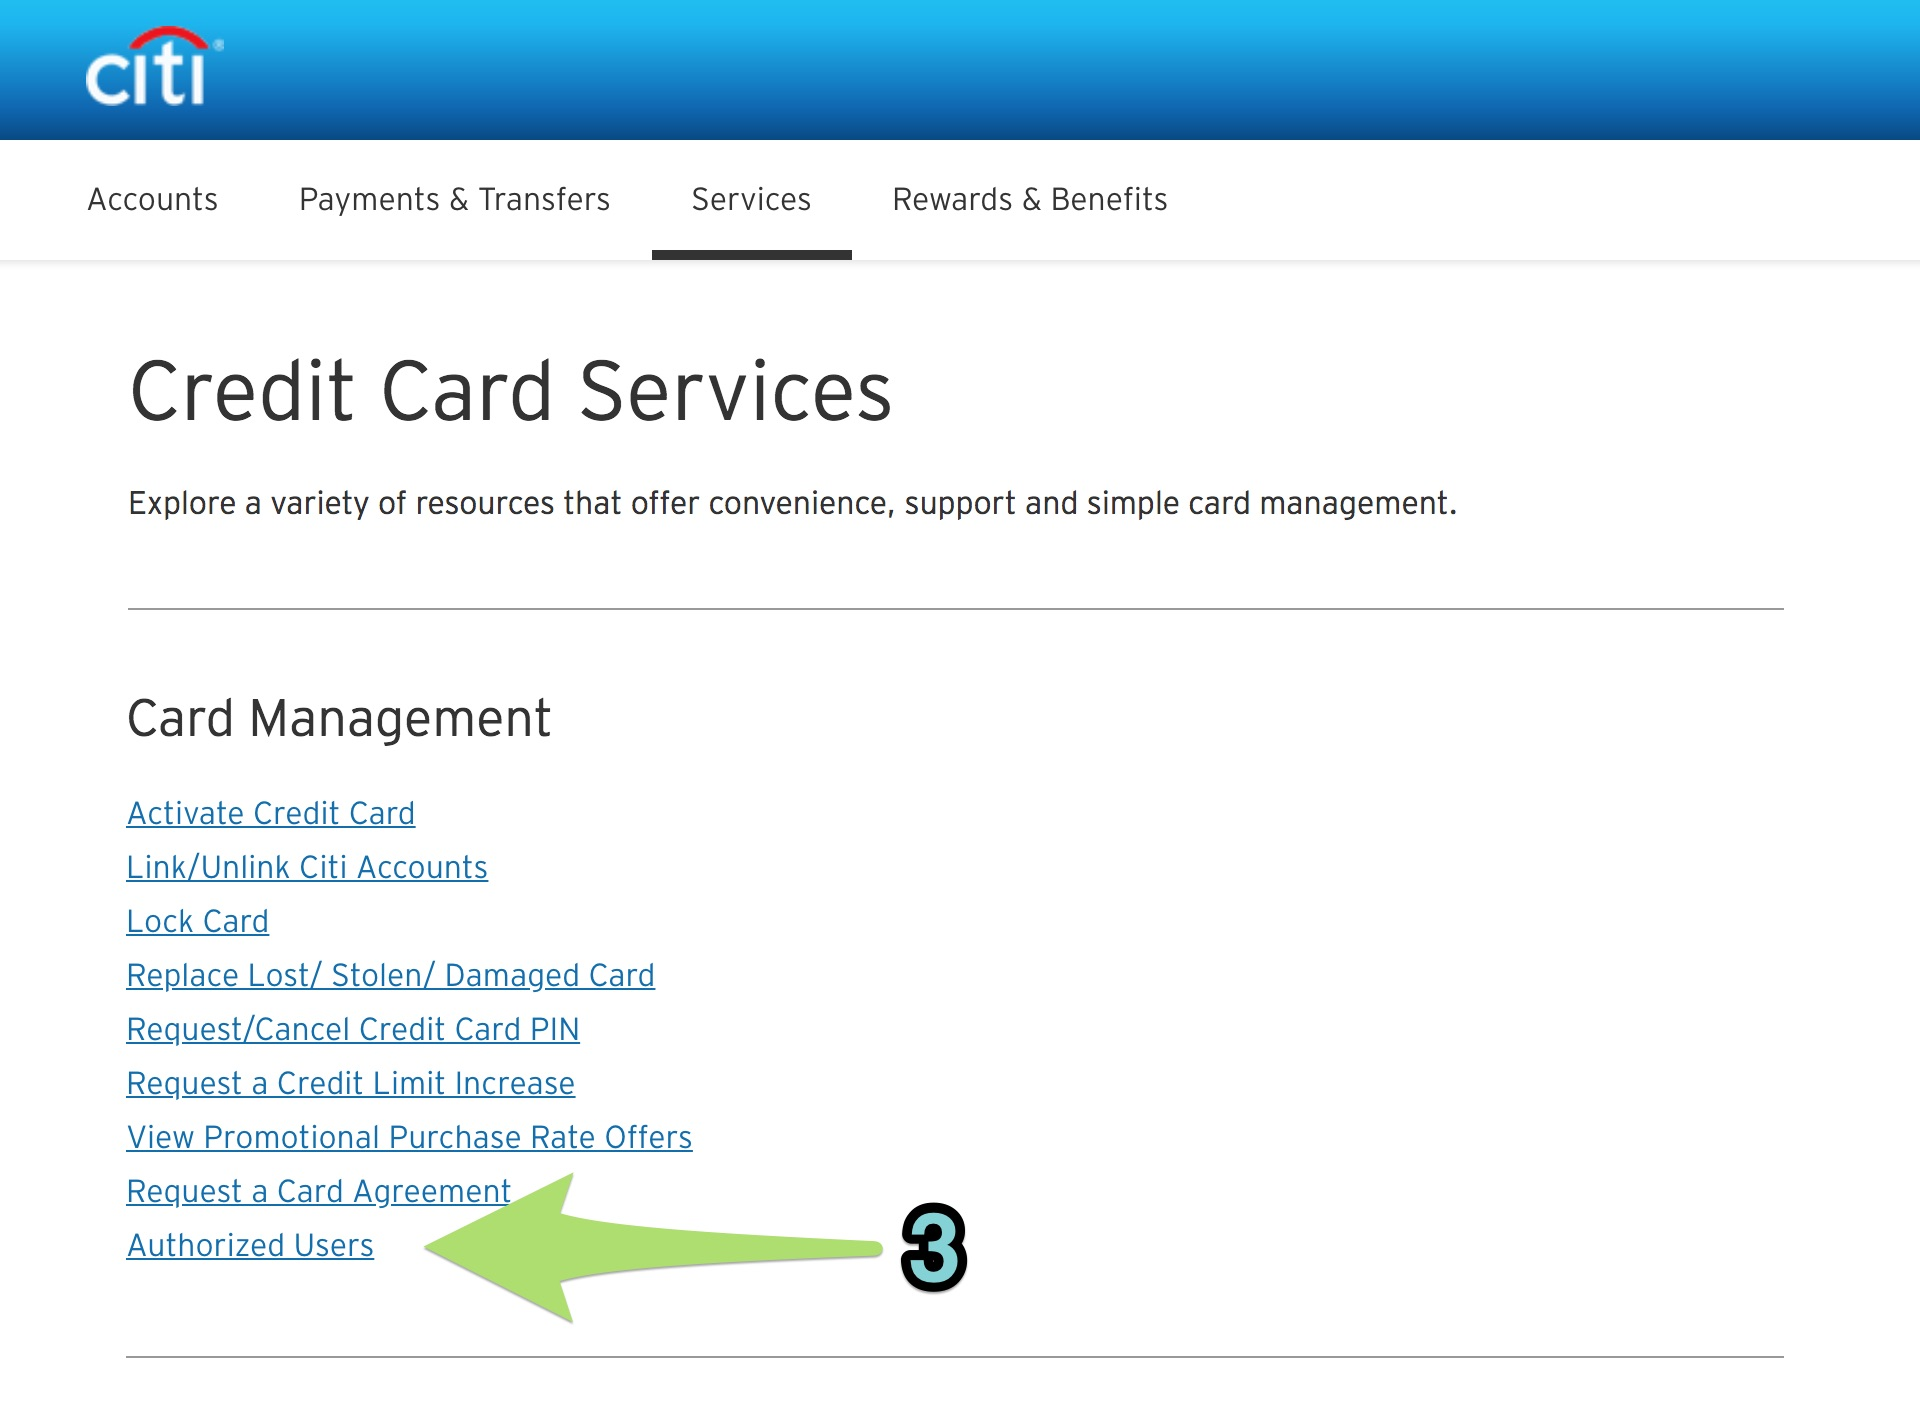 Adding an authorized user for a Citi card. (2)